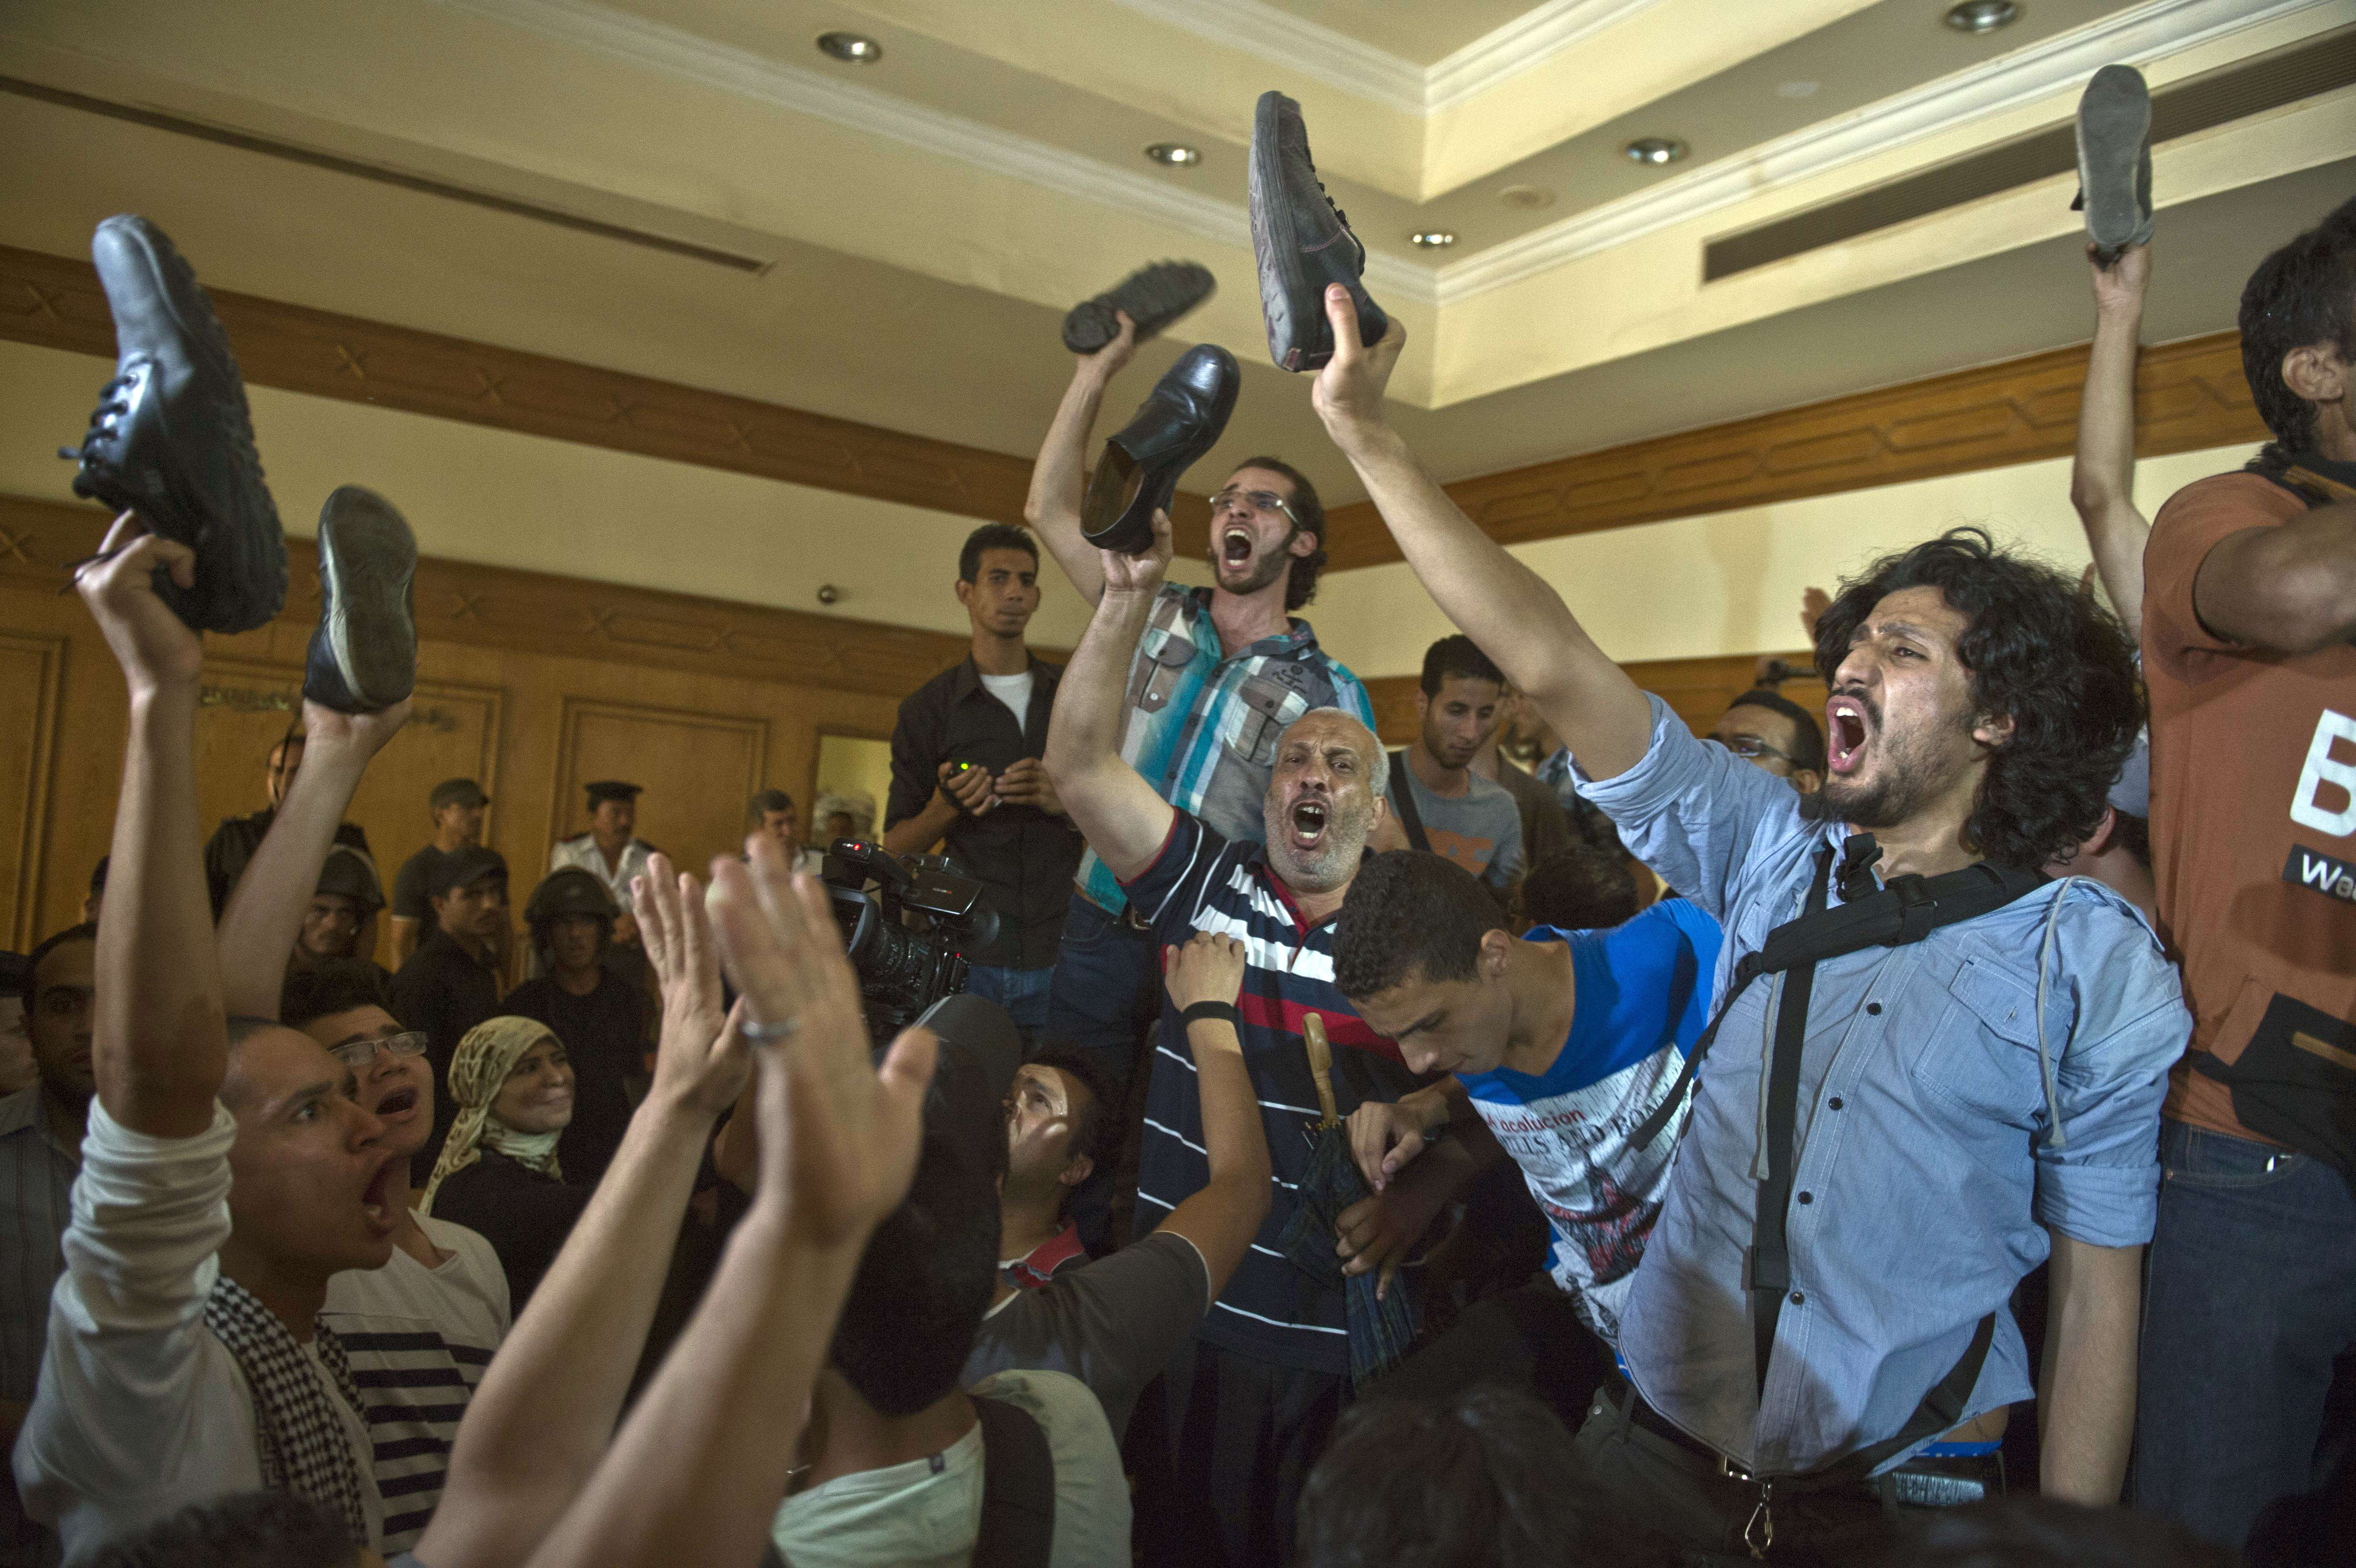 Egyptian relatives and friends of political activist Ahmed Douma hold up a shoe as they react at the end of his trial in Cairo, on June 3, 2013, on charges of insulting President Mohamed Morsi. (AFP Photo)